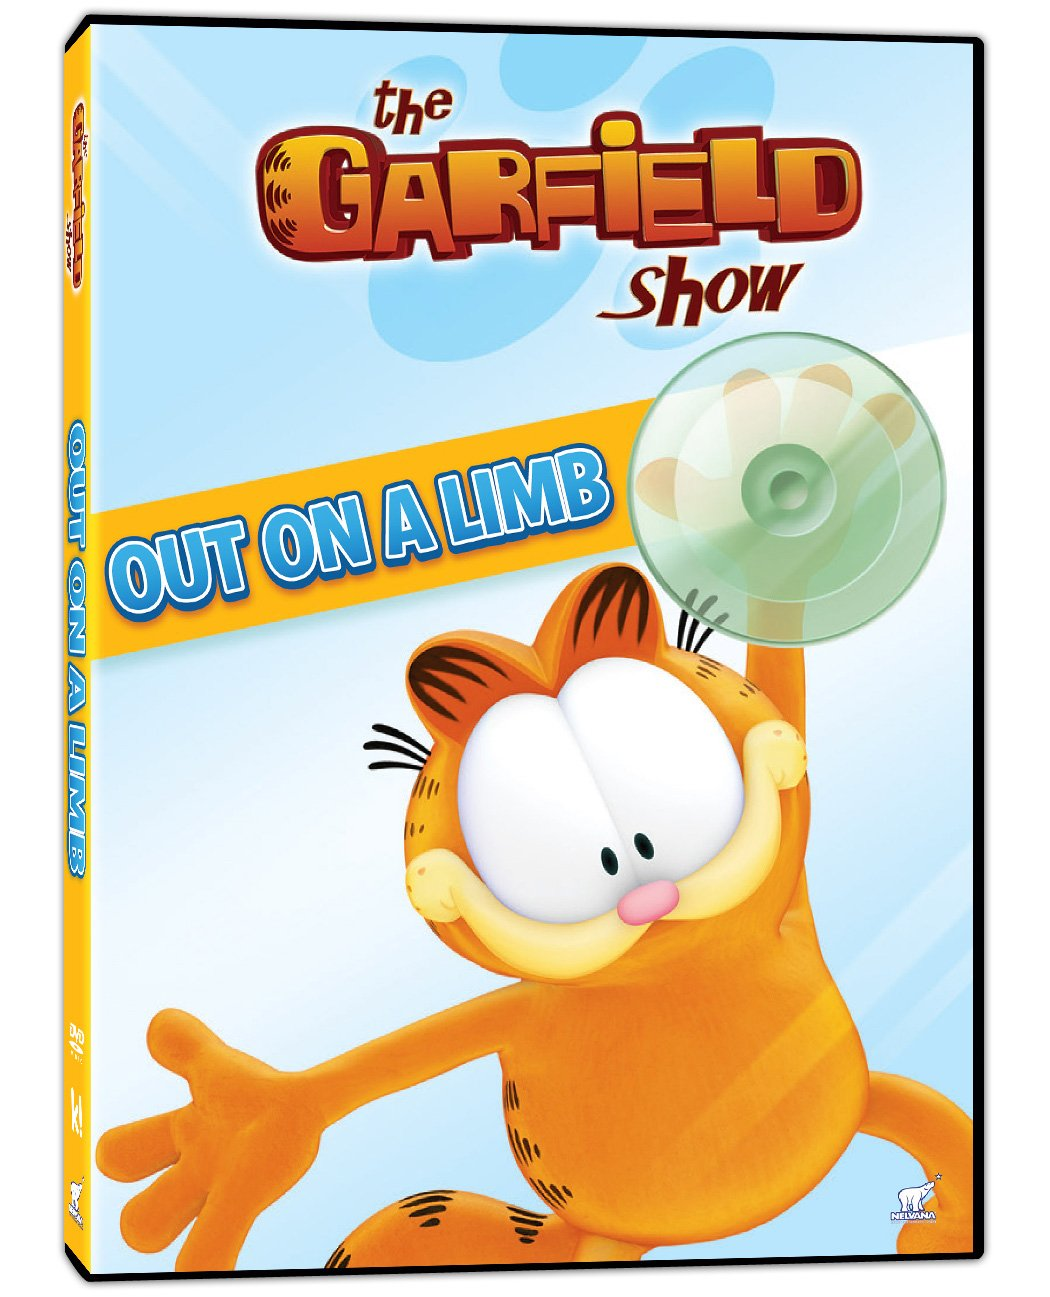 The Garfield Show - Out on a Limb (Bilingual) Frank Welker Greg Berg Philippe Vidal Phase 4